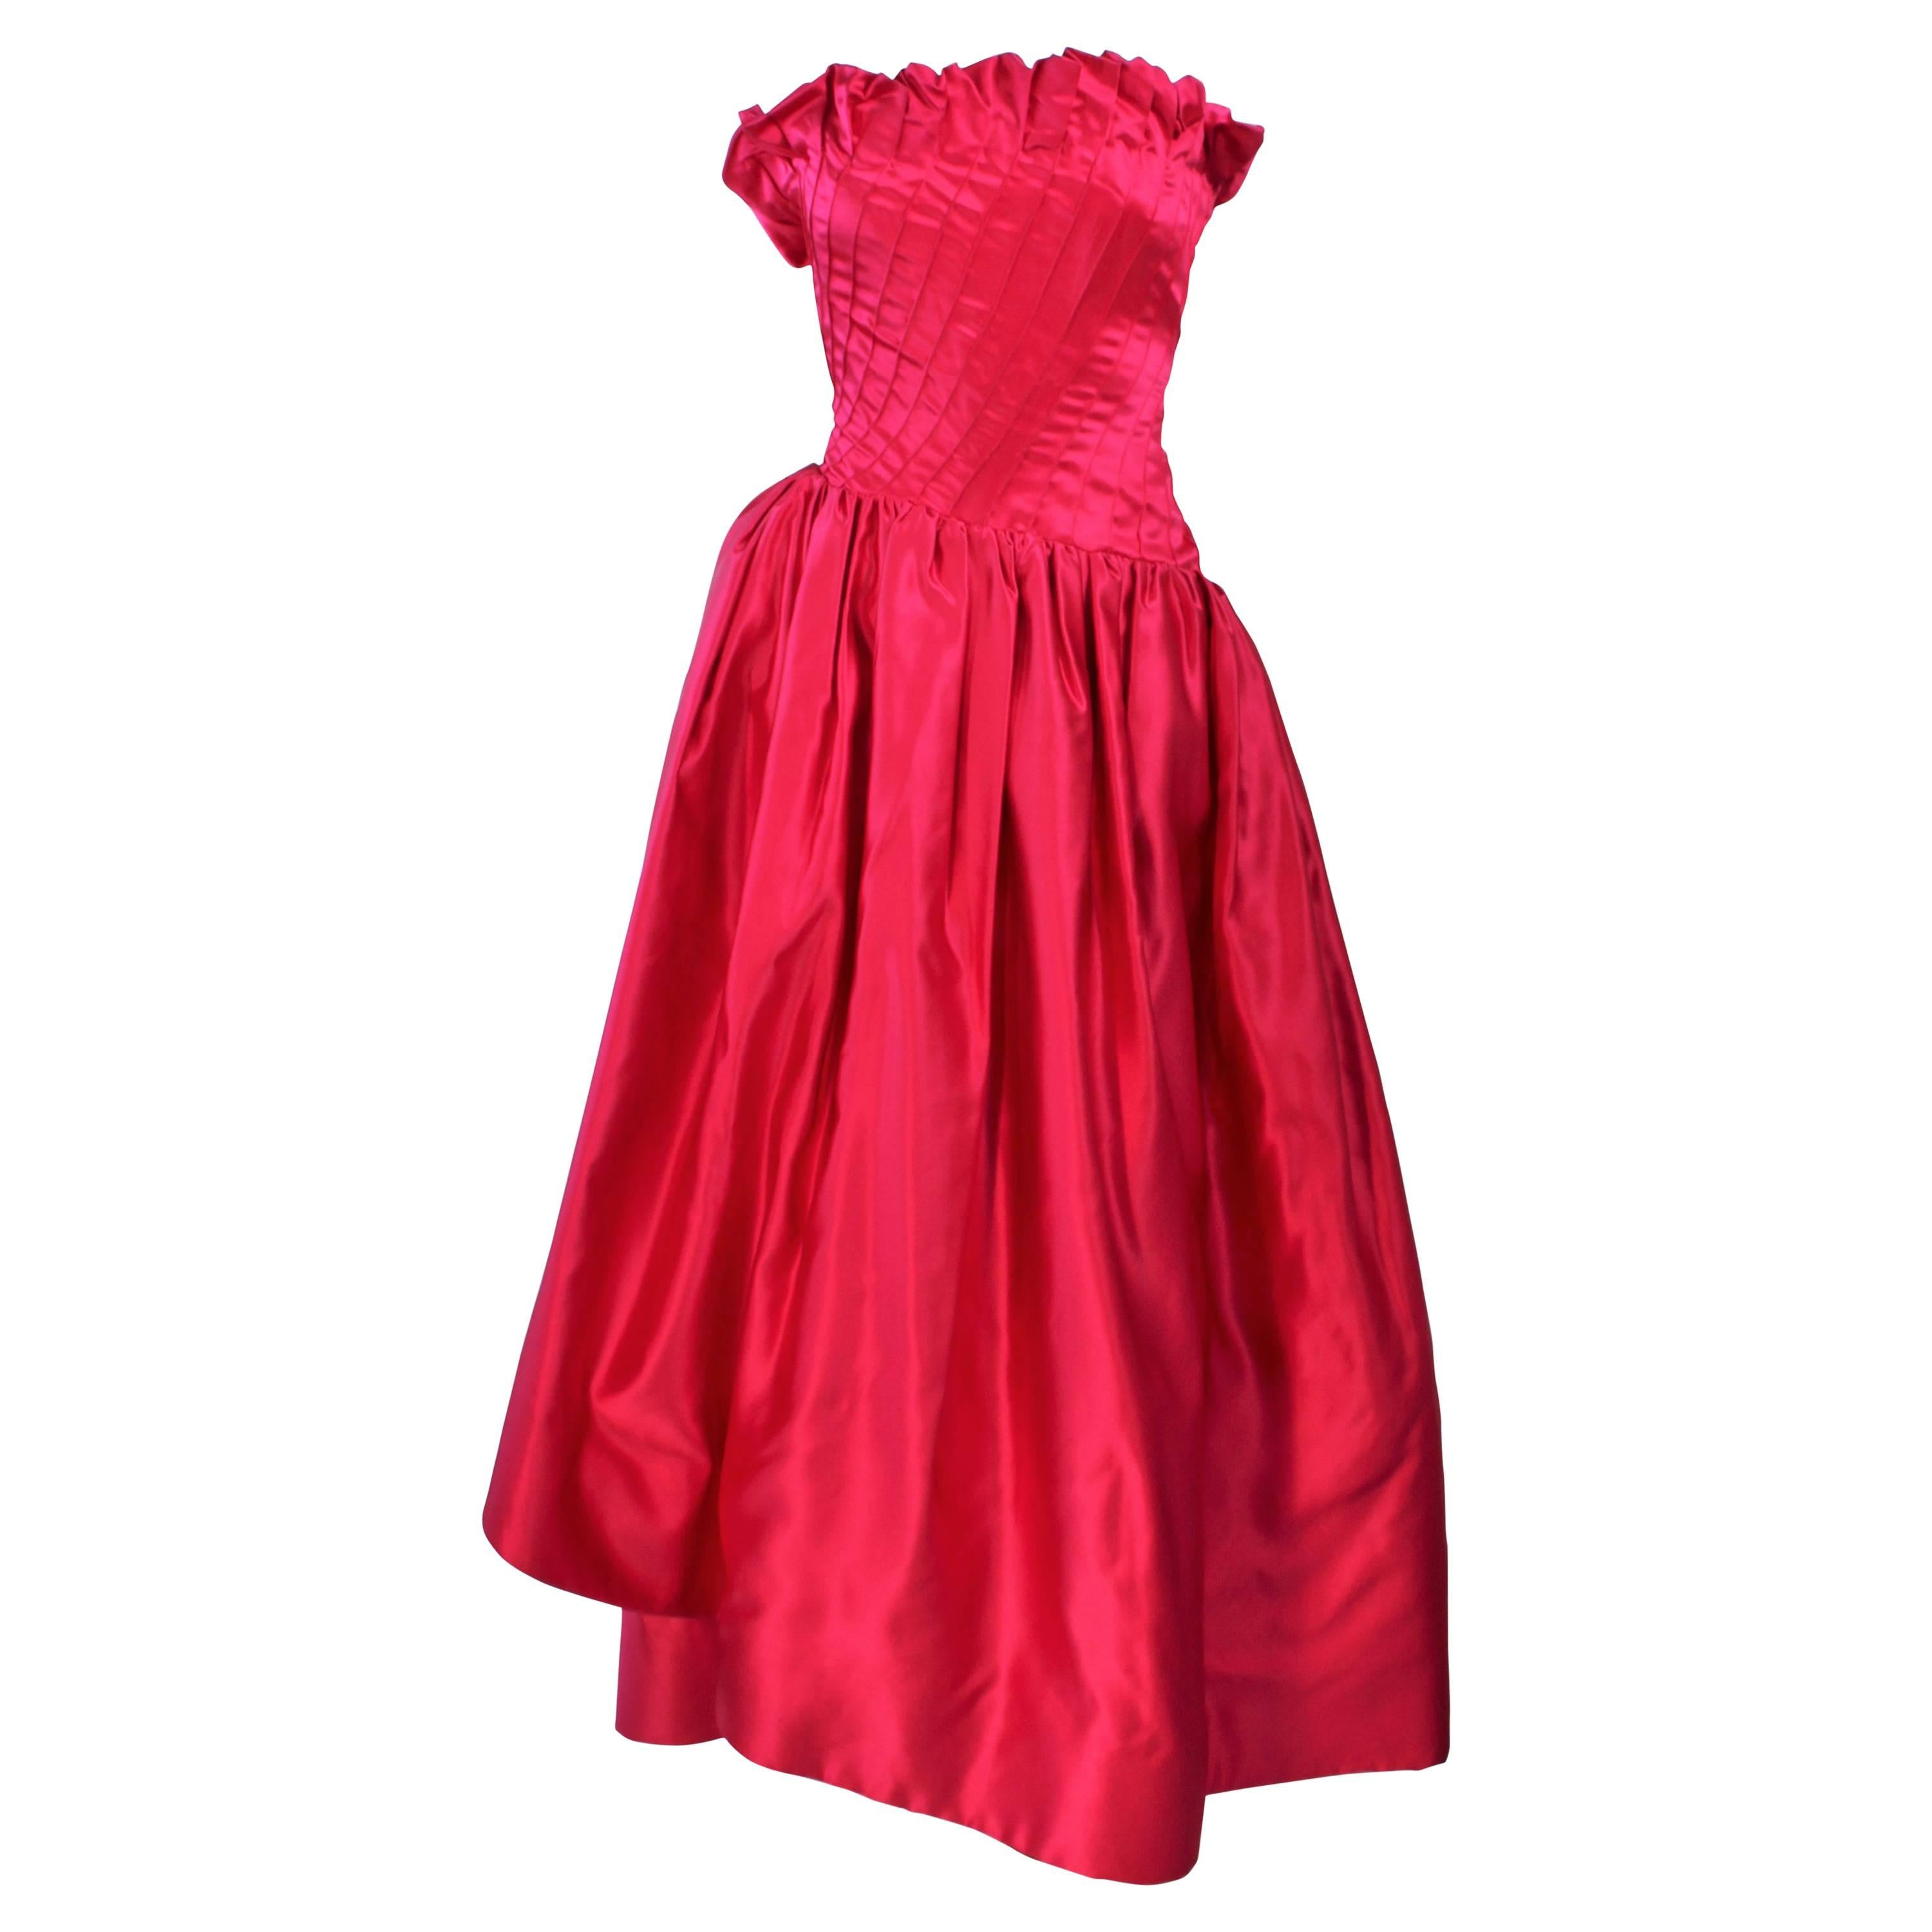 43dff4a0e91 JILL RICHARDS Red Strapless Jersey and Taffeta Dress with Black Crinoline  1980 s For Sale at 1stdibs